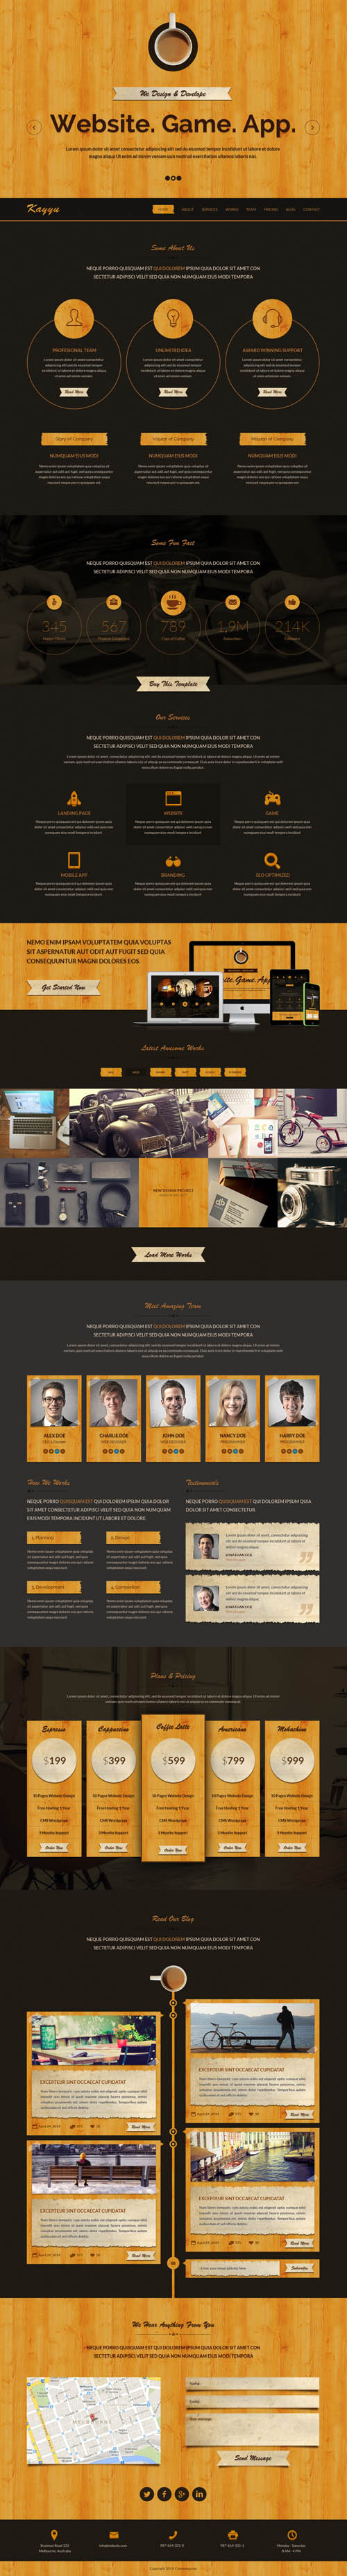 Kayyu One Page PSD Template #html5 #websitedesign #webdesign ...